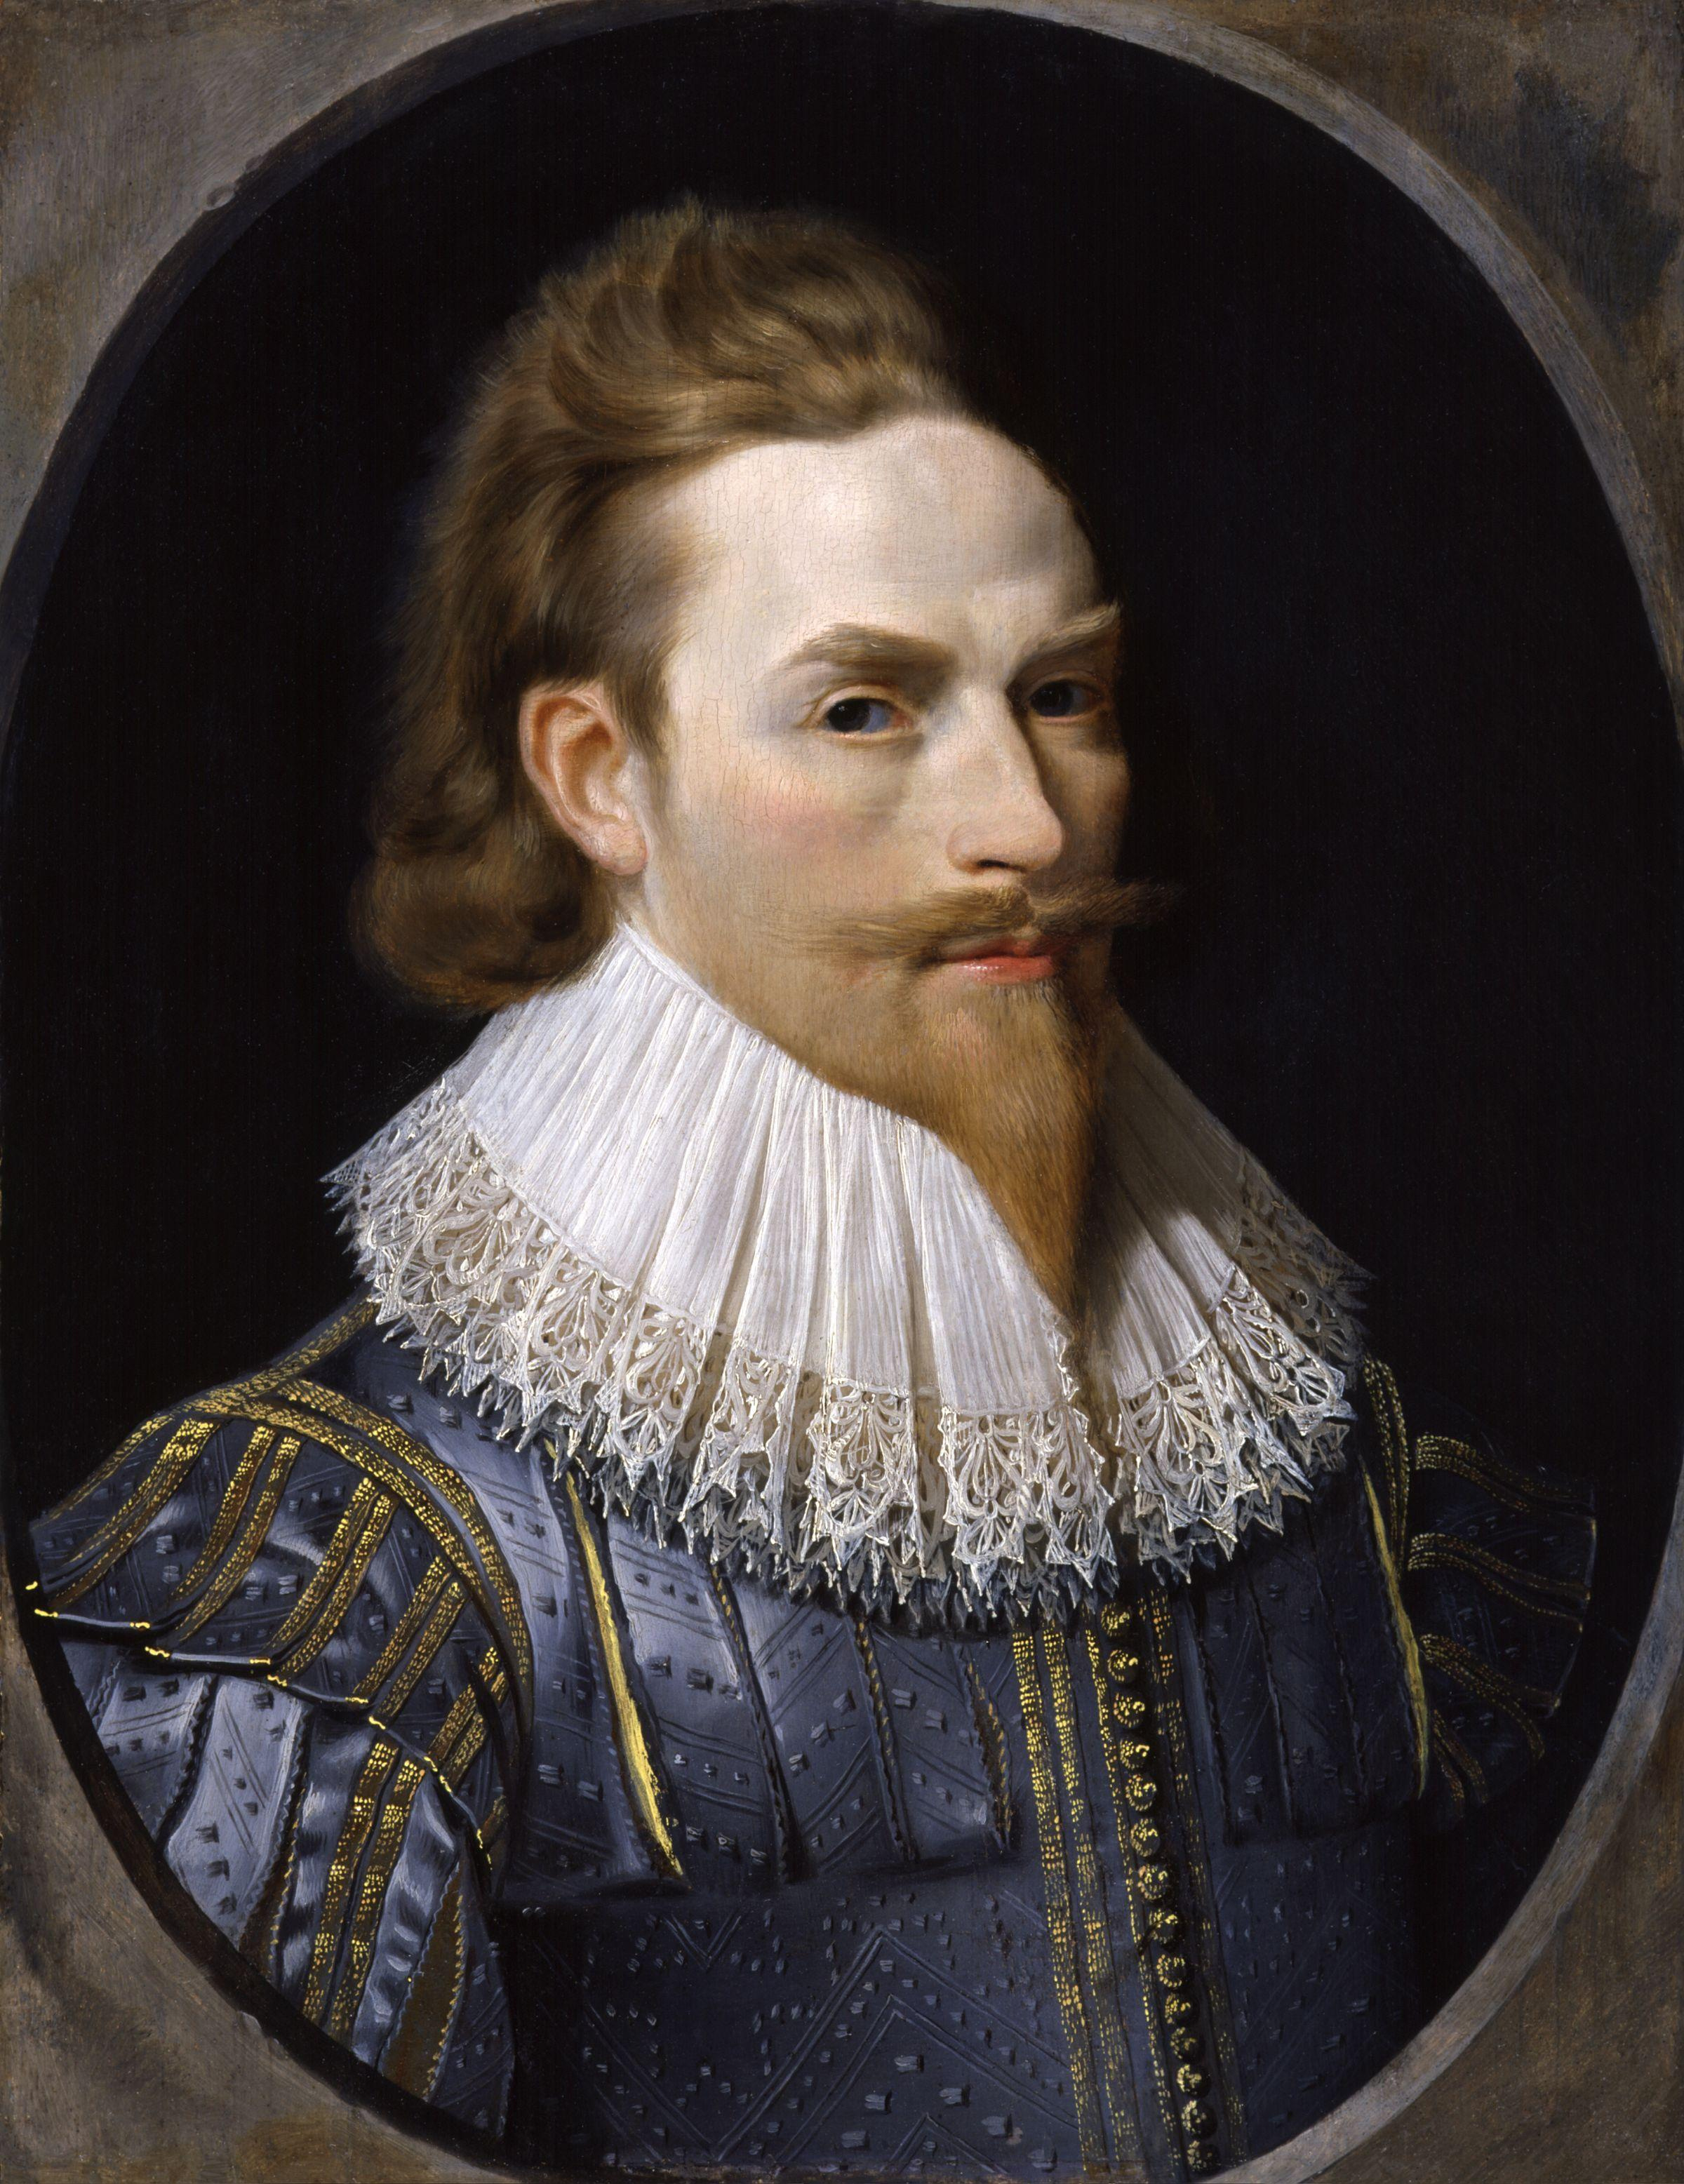 nathaniel bacon biography essay Name _____ date _____ hero or traitor directions: was nathaniel bacon a hero or a traitor review the evidence to develop your own informed opinion.